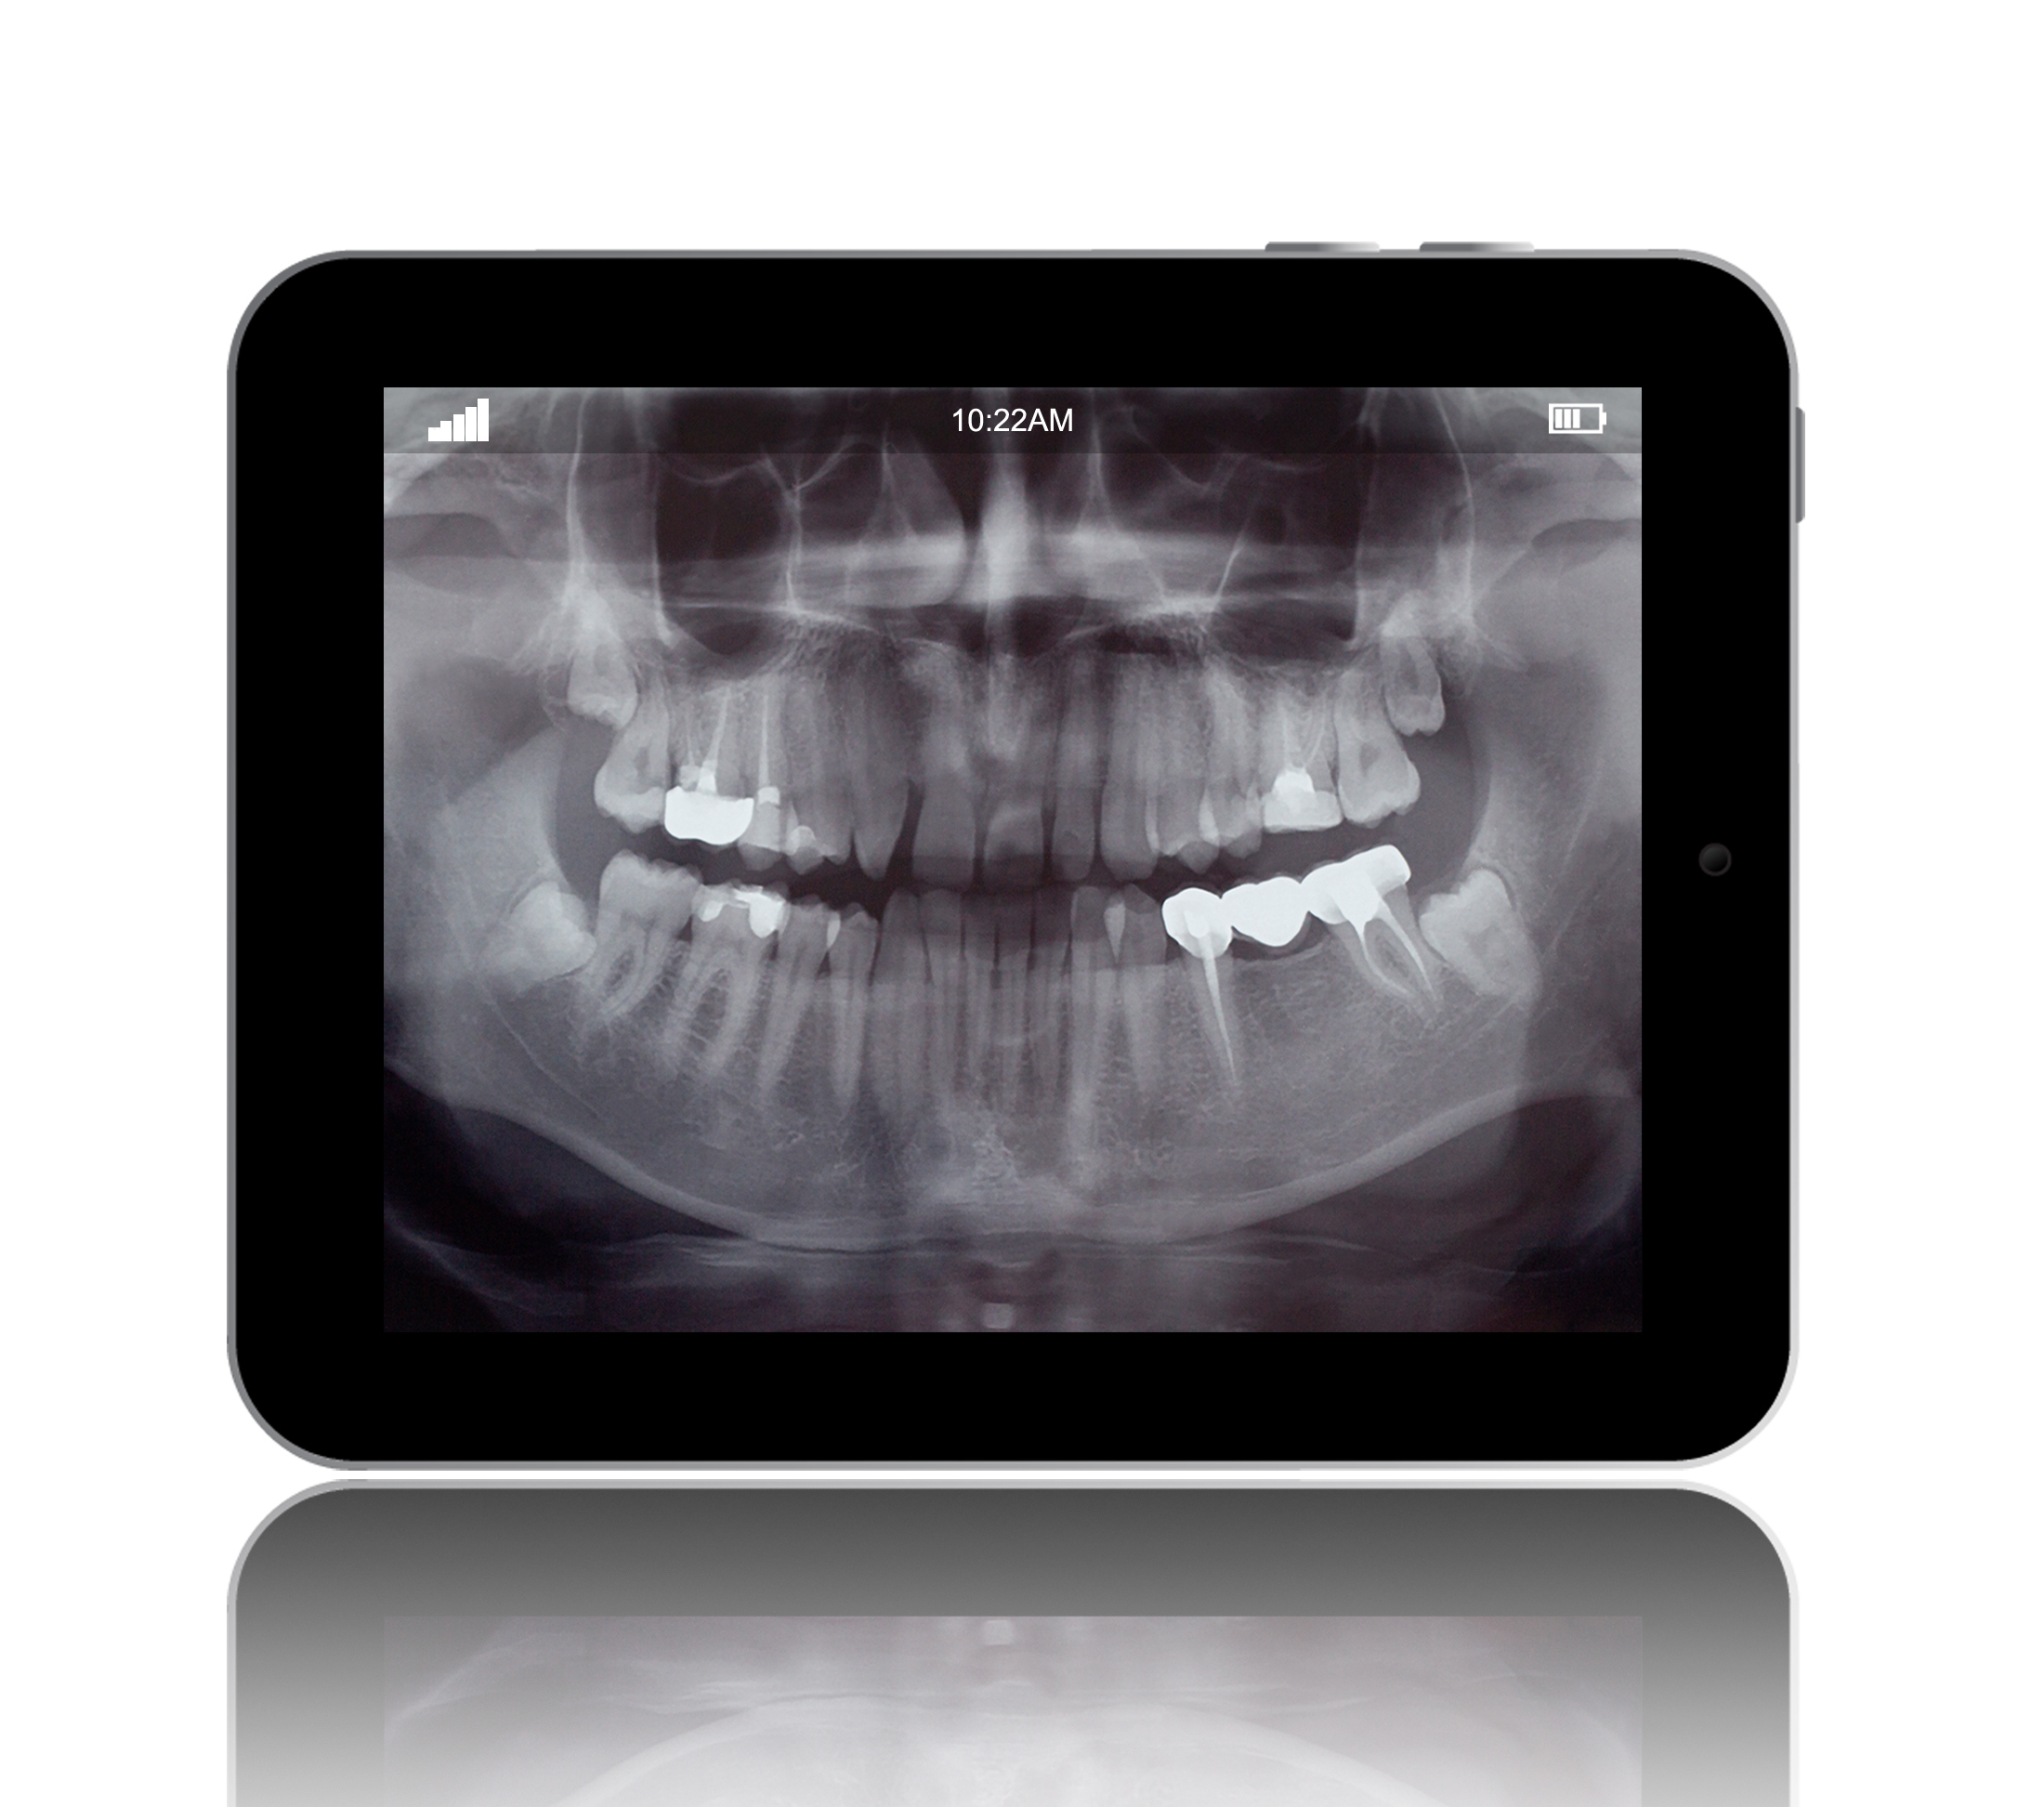 Digital X-rays are offered at Michael T. Westendorf DDS